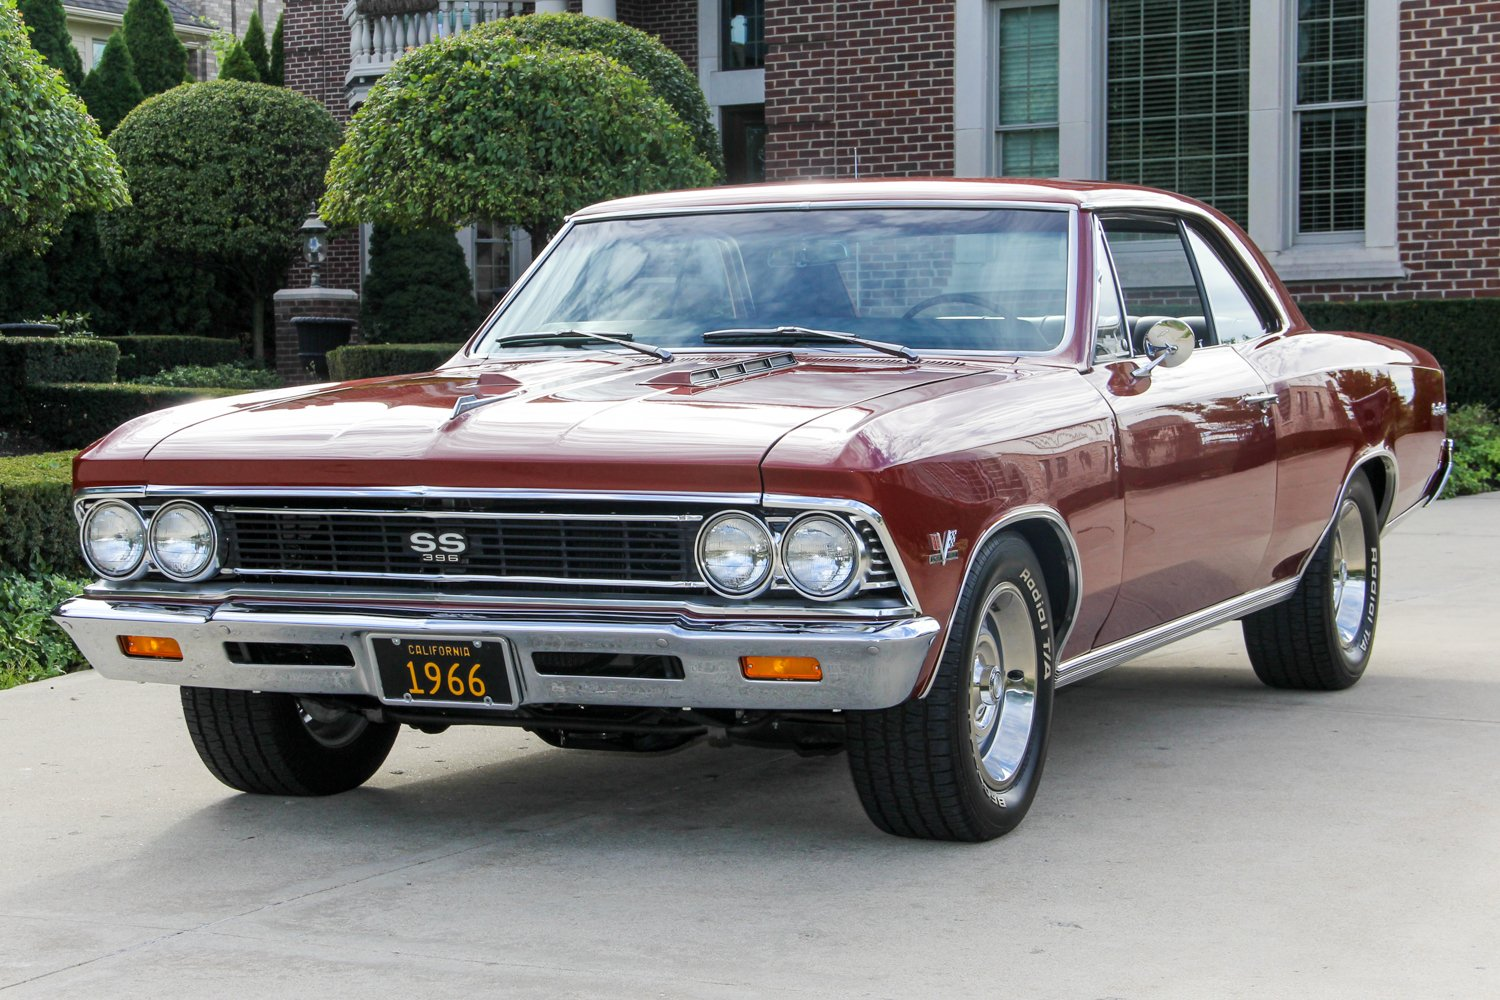 1966 Chevrolet Chevelle | Classic Cars for Sale Michigan